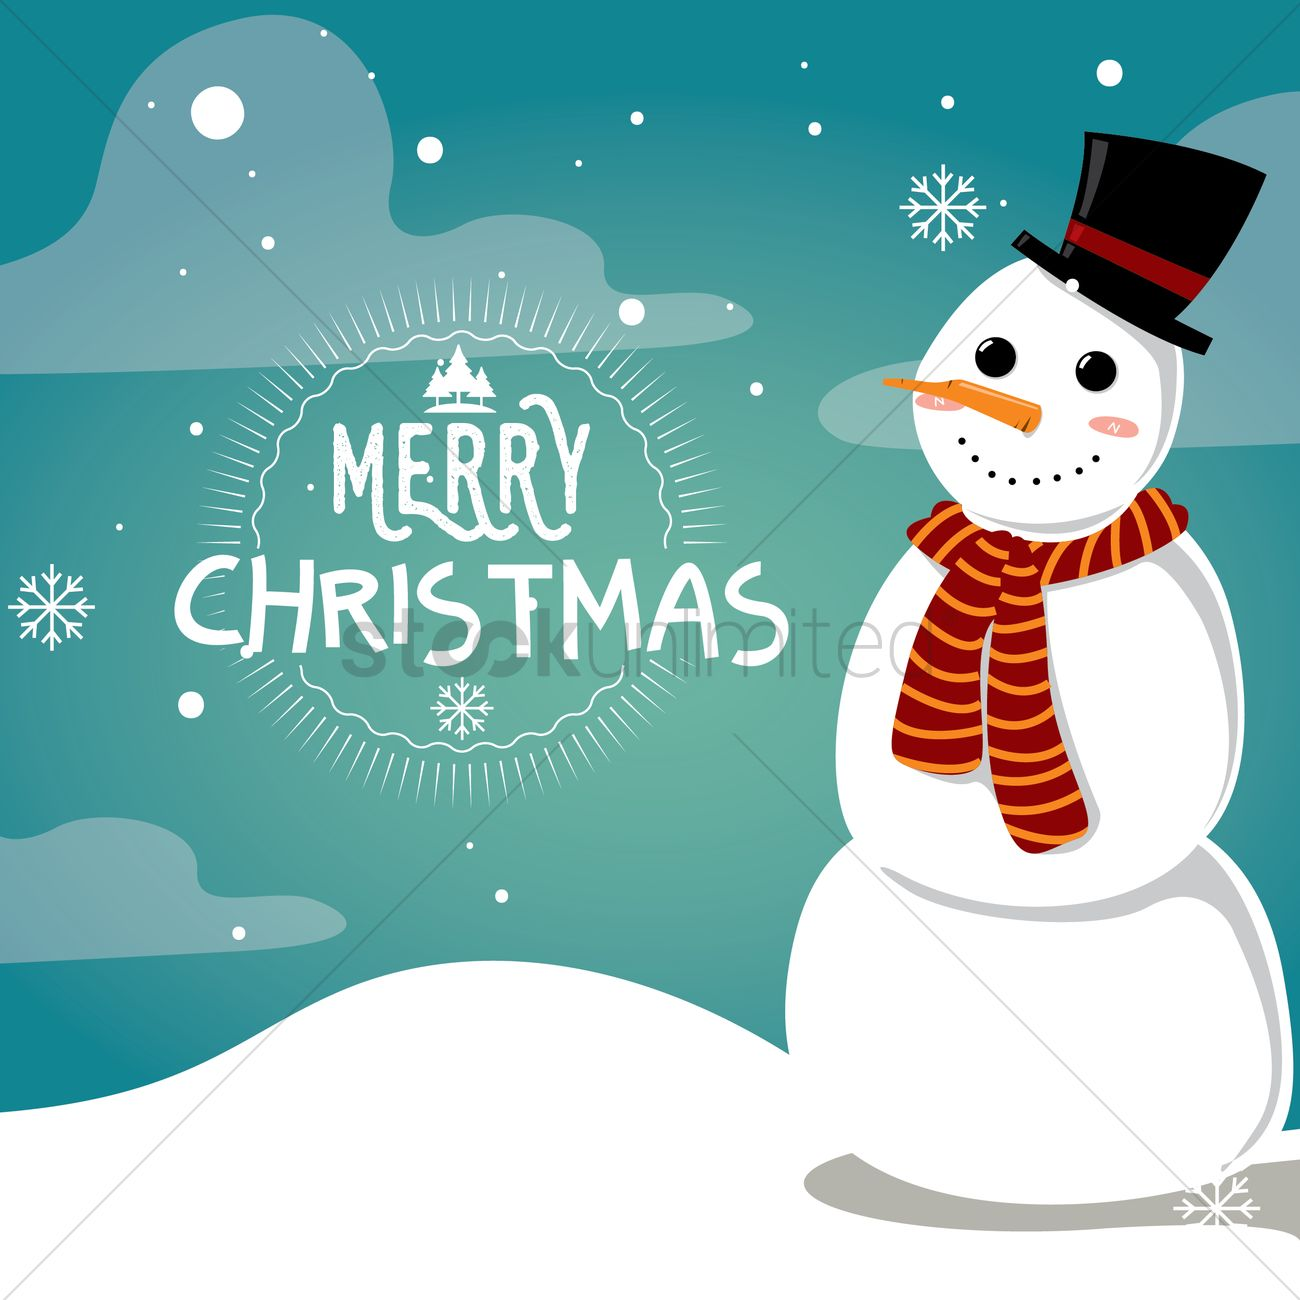 Snowman christmas card design Vector Image - 1745635 | StockUnlimited